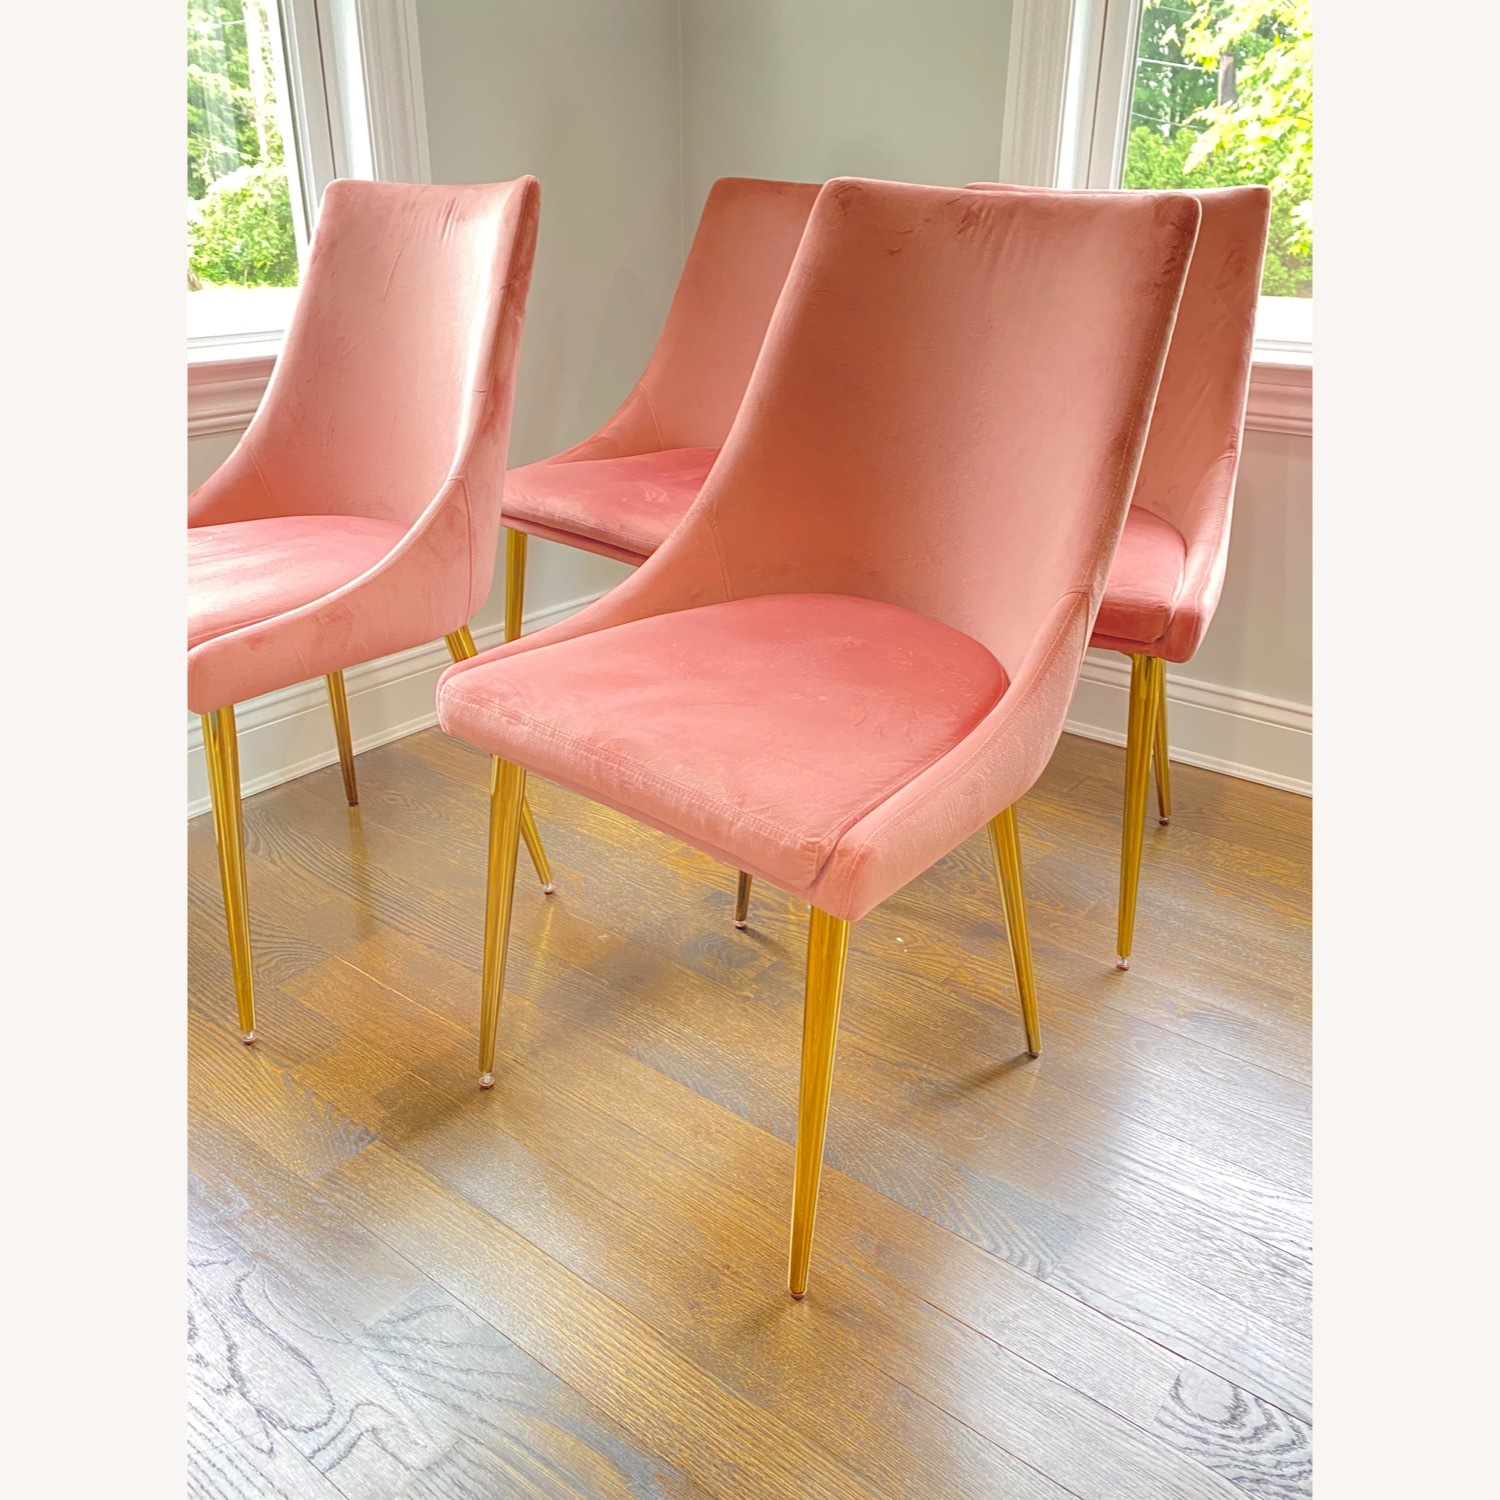 Modway Midcentury Velvet Dining Chairs Dusty Rose - image-1